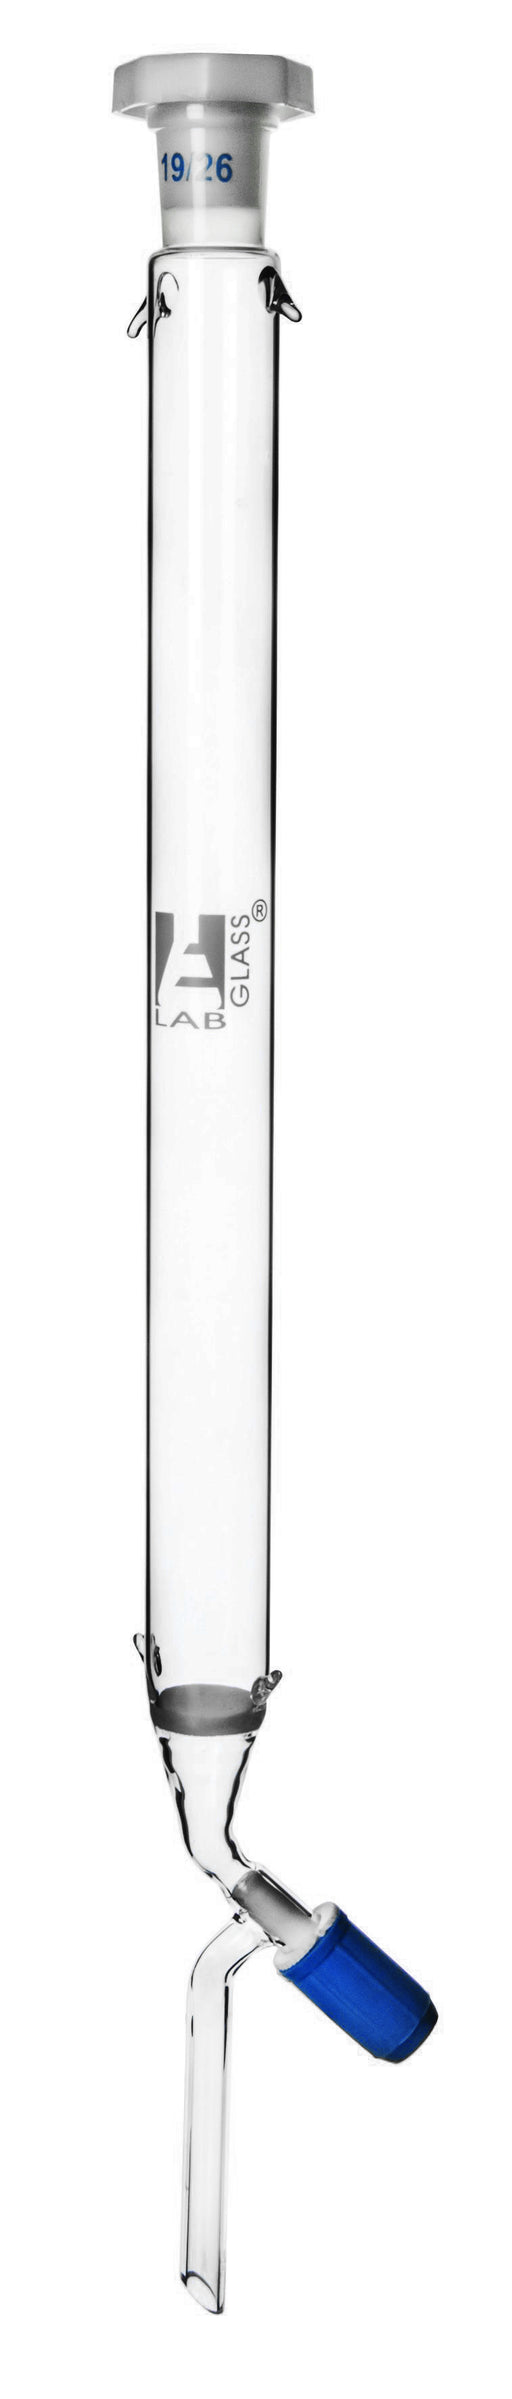 Chromatography Column, 12 Inch - 19/26 Joint Size - Borosilicate 3.3 Glass - With Rotaflow Stopcock & Sintered Disc - Eisco Labs